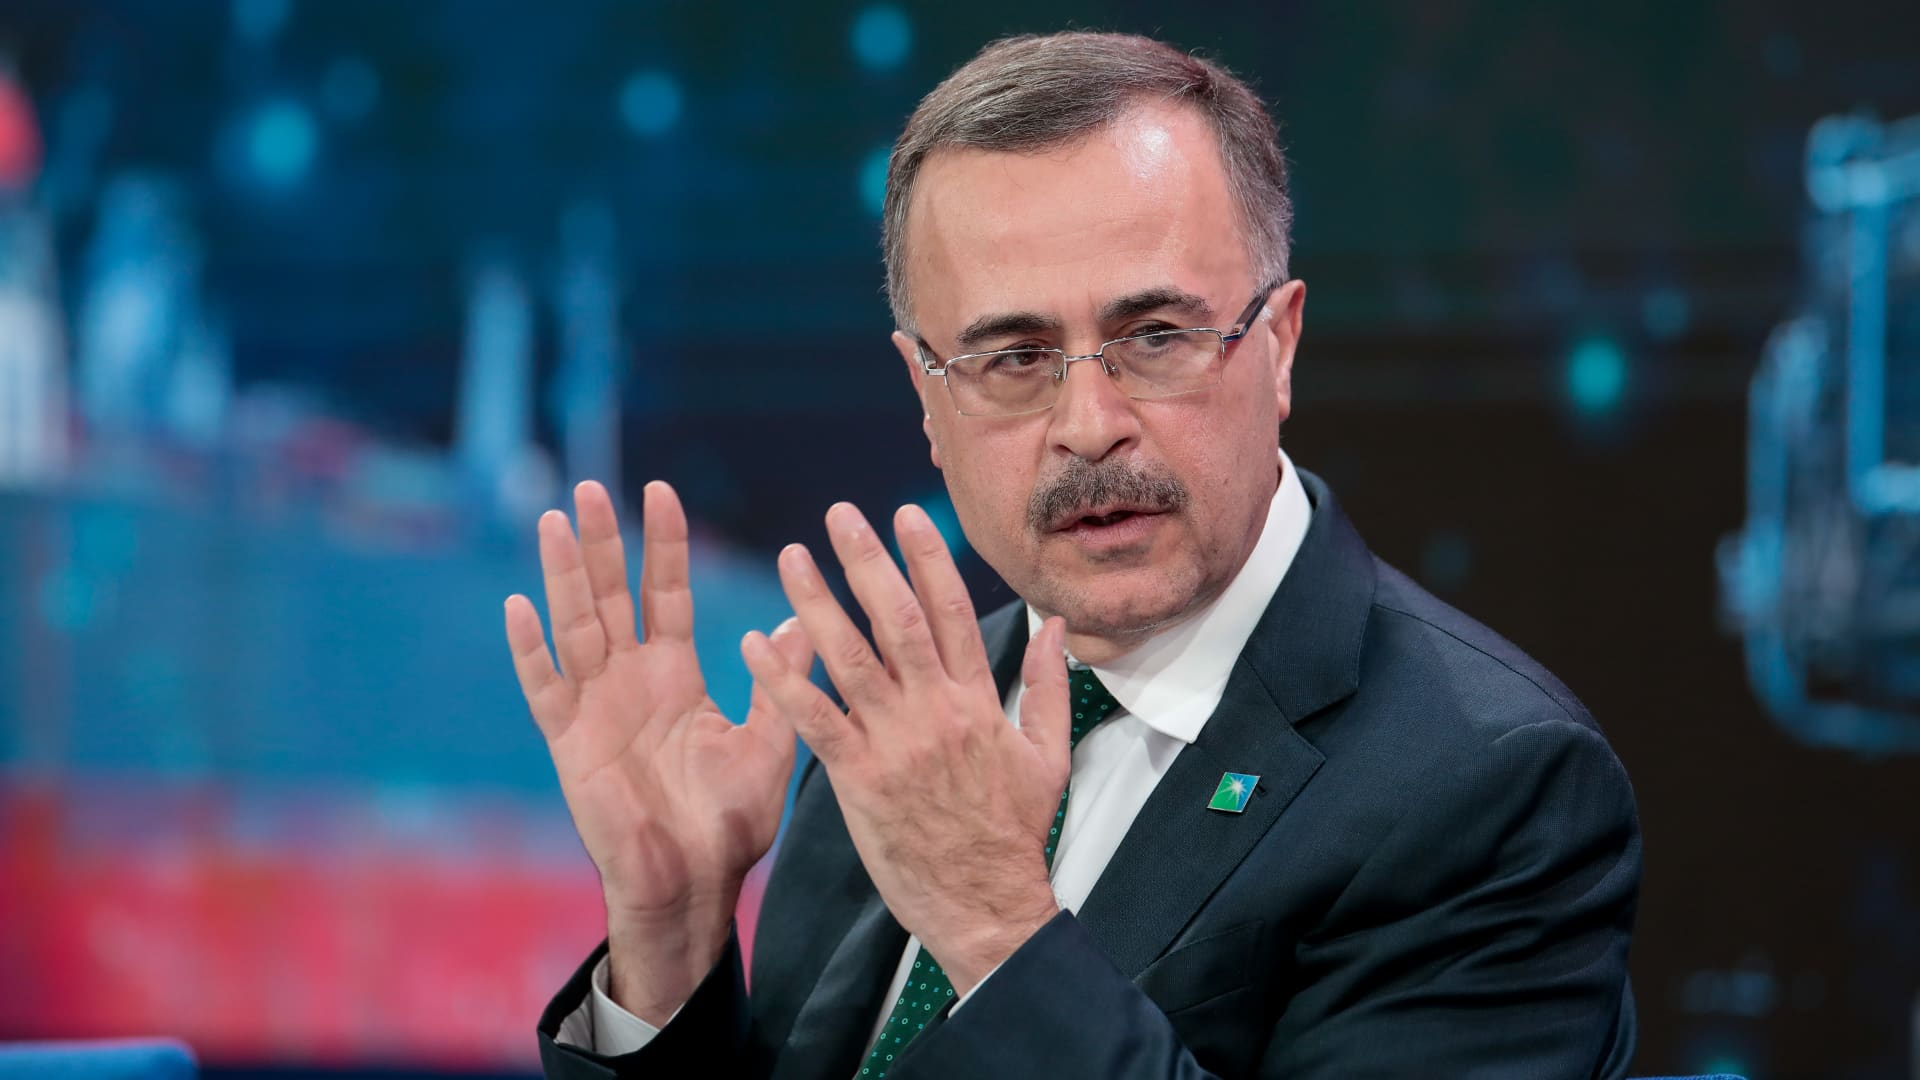 Amin Nasser, chief executive officer of Saudi Aramco, gestures as he speaks during a panel session on day three of the World Economic Forum (WEF) in Davos, Switzerland, on Thursday, Jan. 23, 2020.